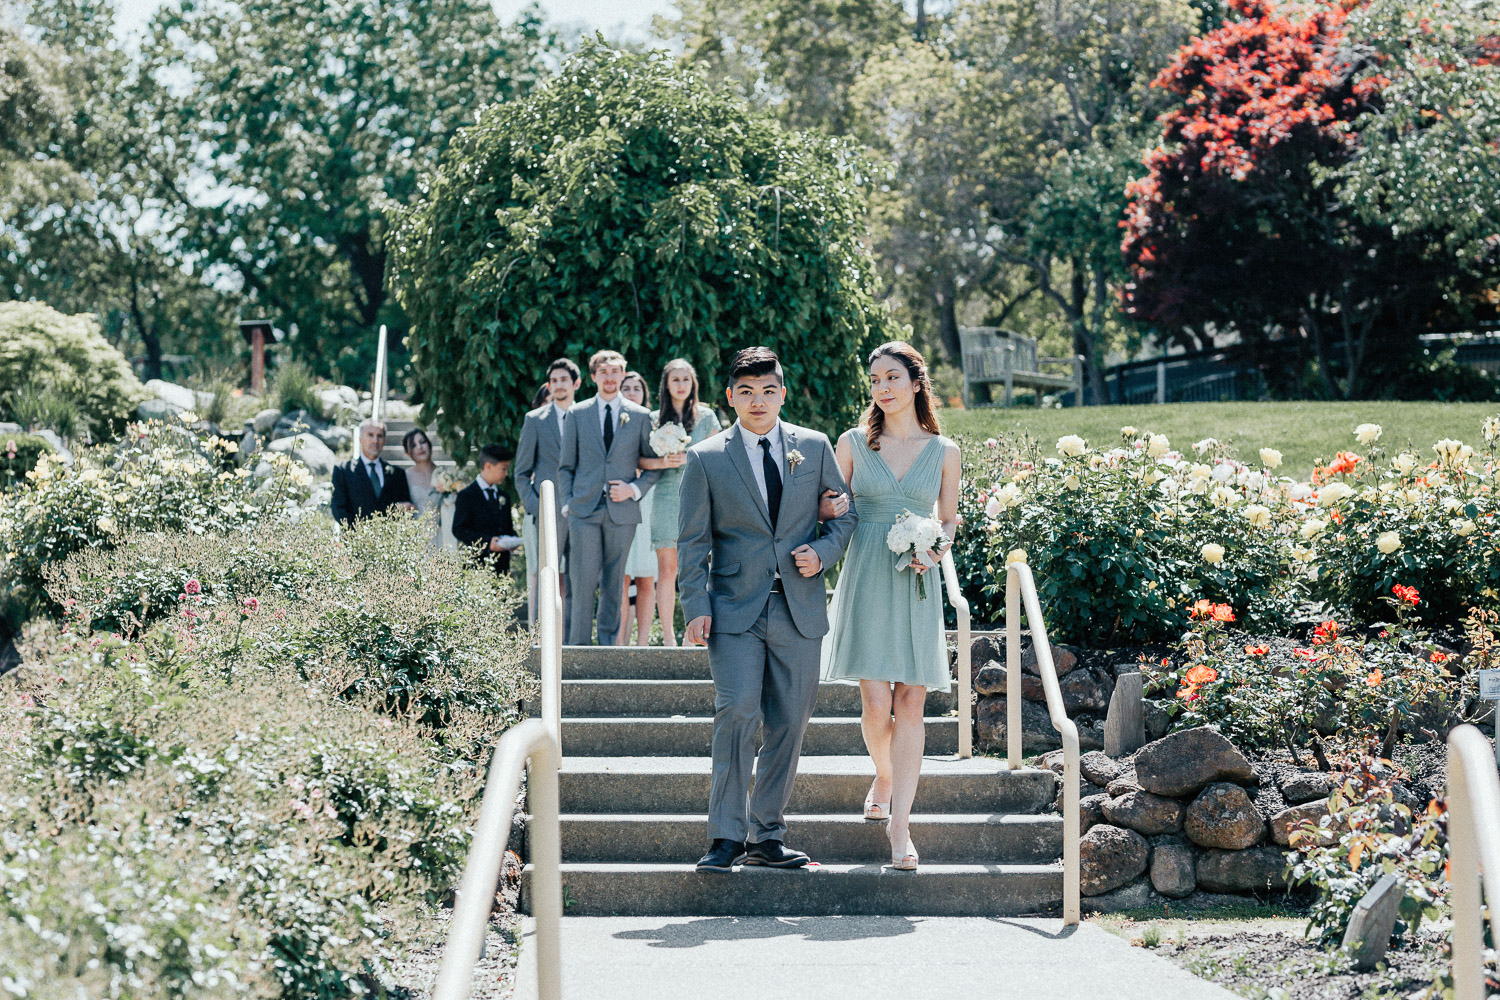 Image of bridesmaid and groomsman walk down the aisle